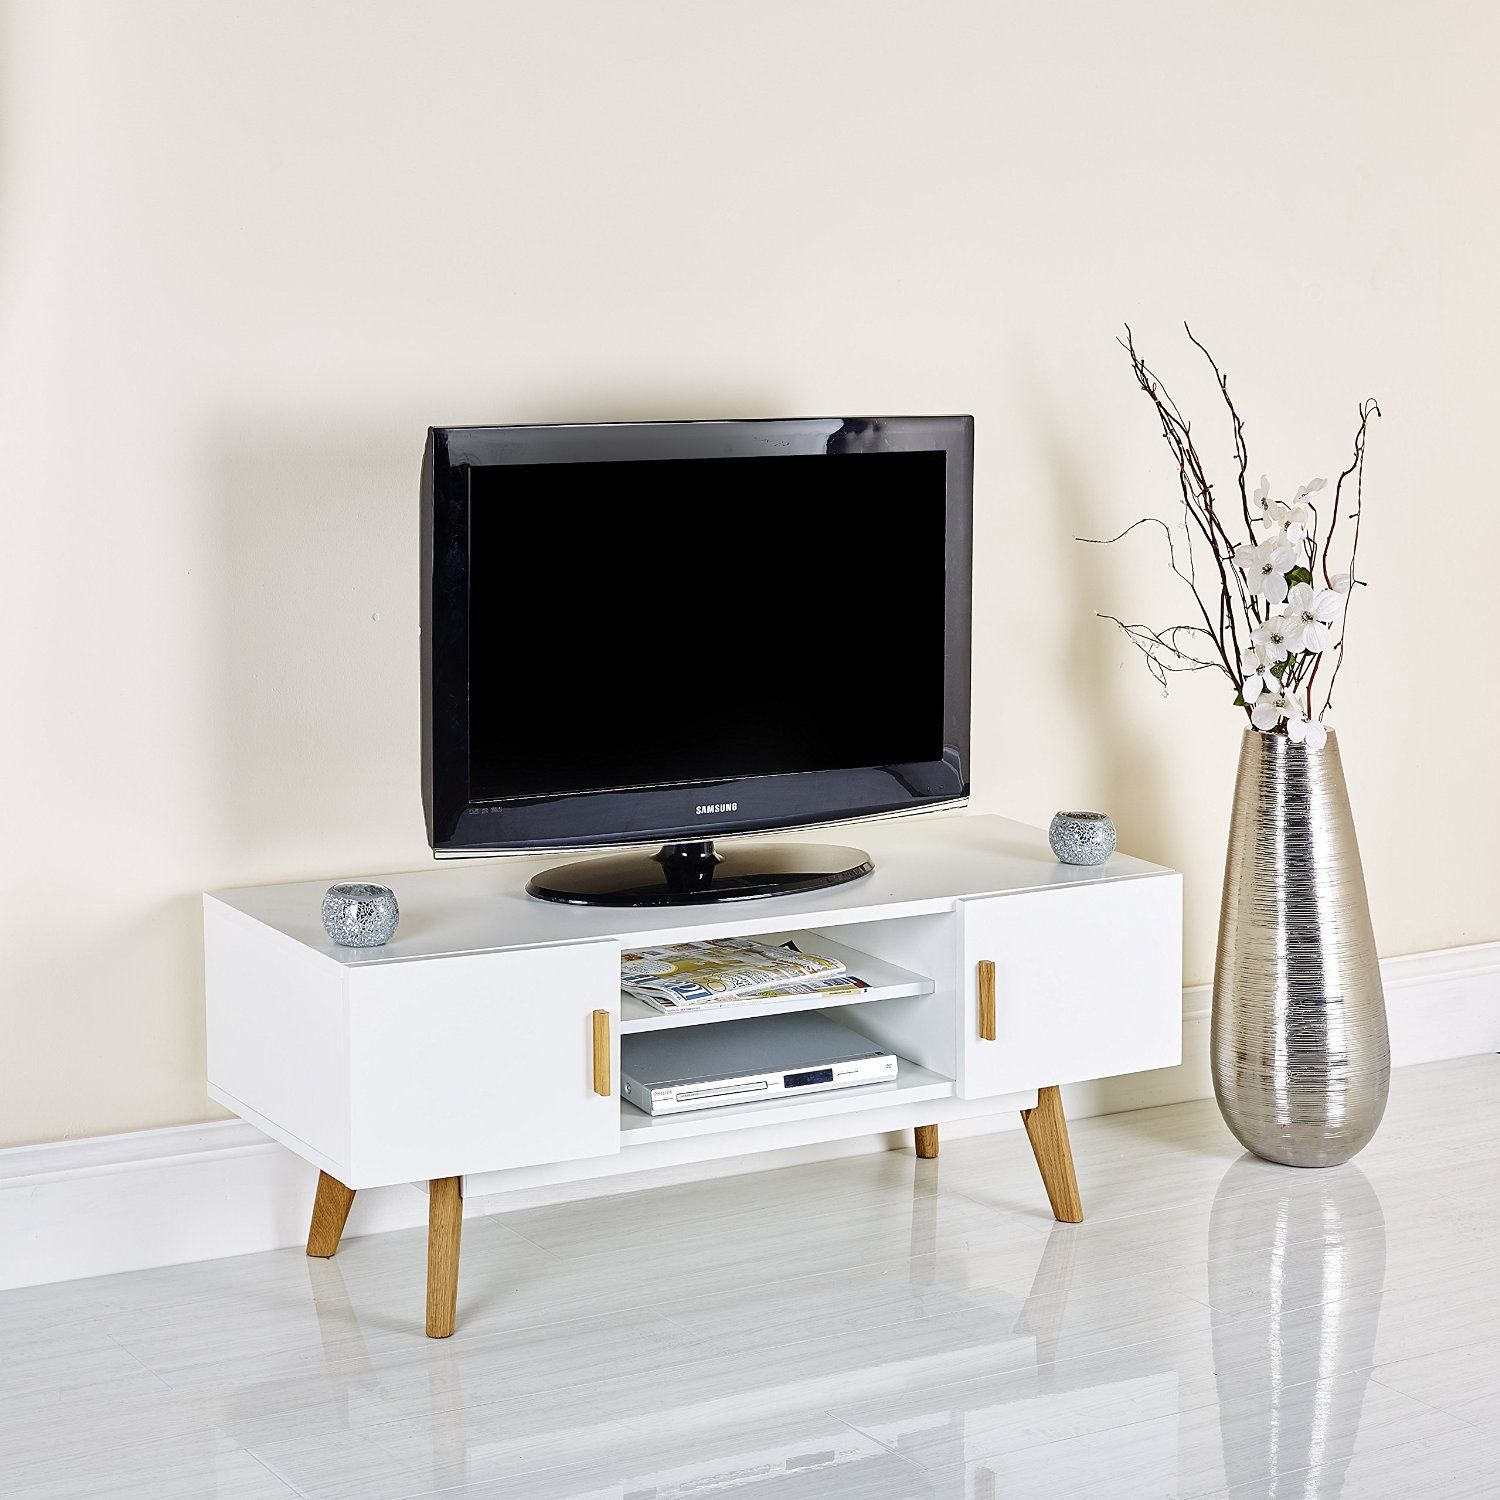 scandinavian white retro tv stand for  to  television  - scandinavian white retro tv stand for  to  television entertainmentunit cabinet with